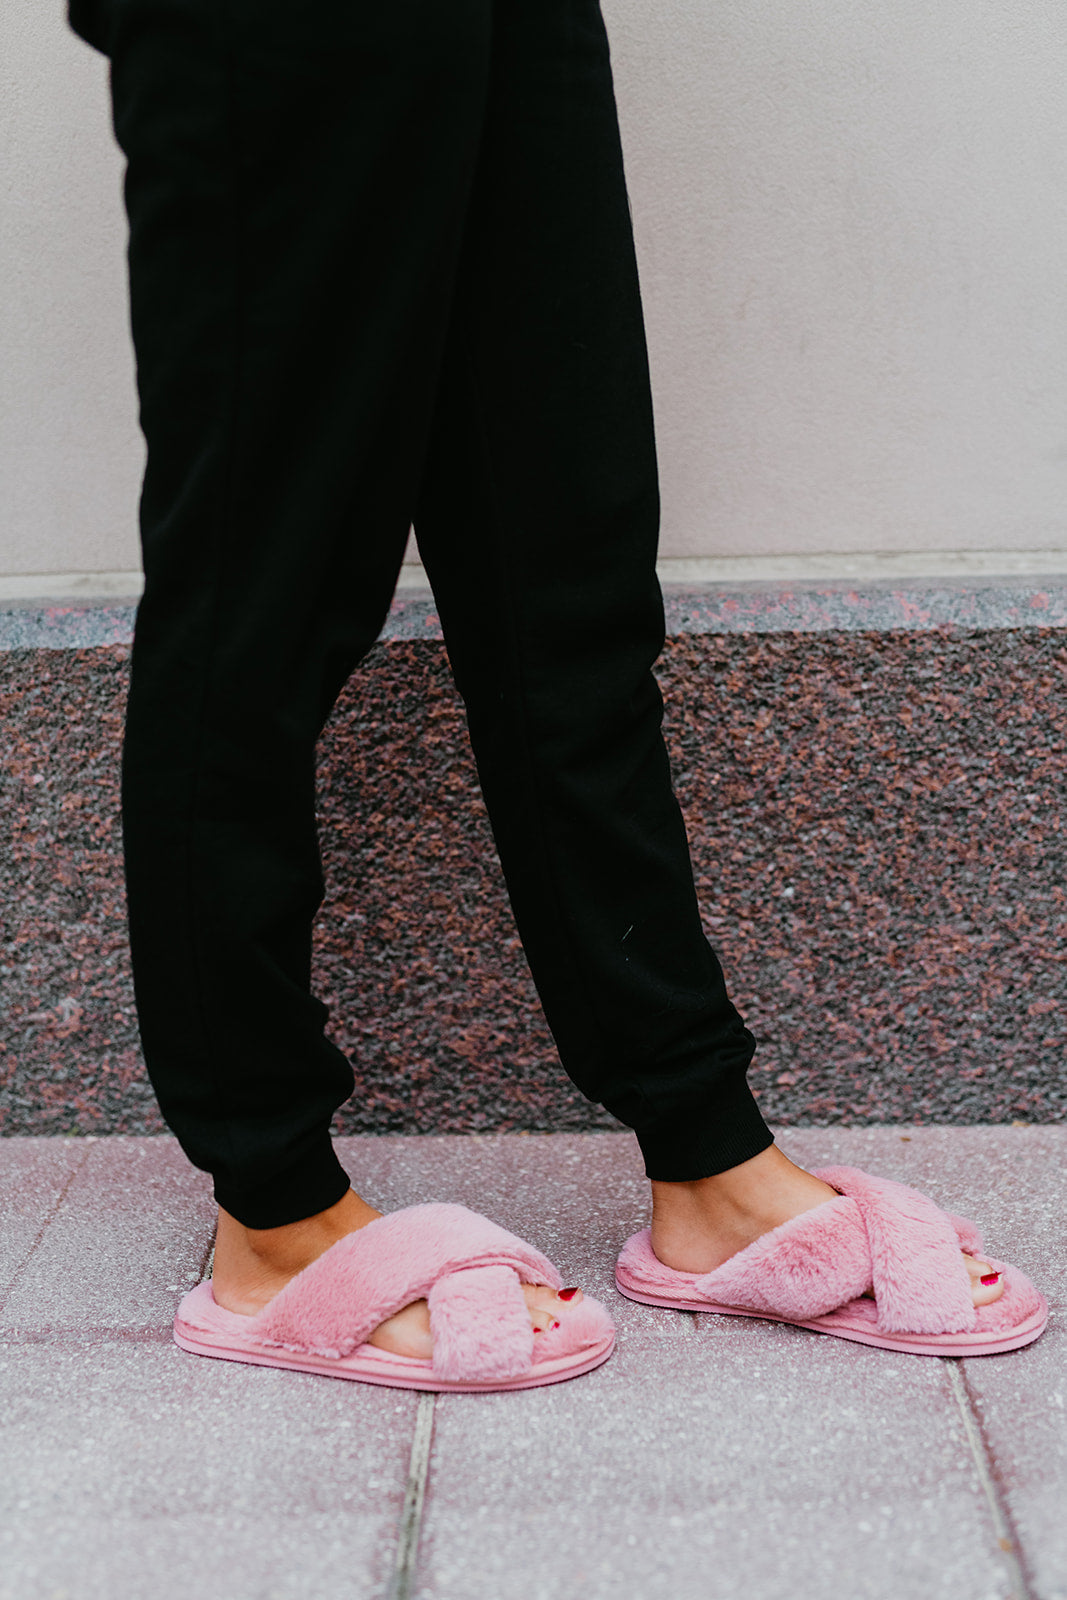 THE SYLVIA SLIPPERS IN PINK